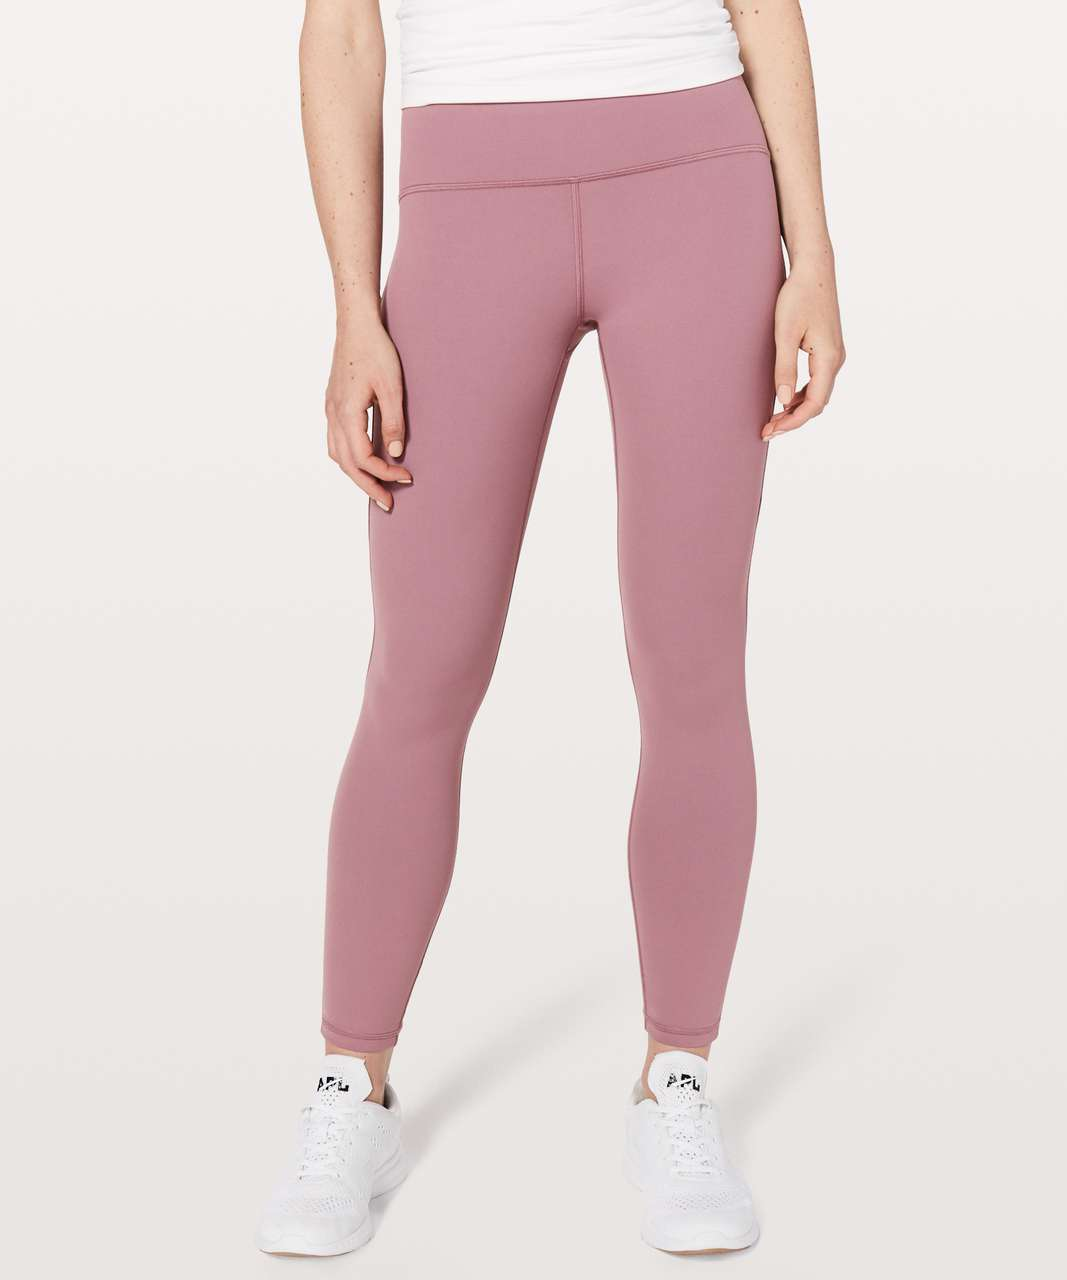 "Lululemon Train Times 7/8 Pant *25"" - Figue"